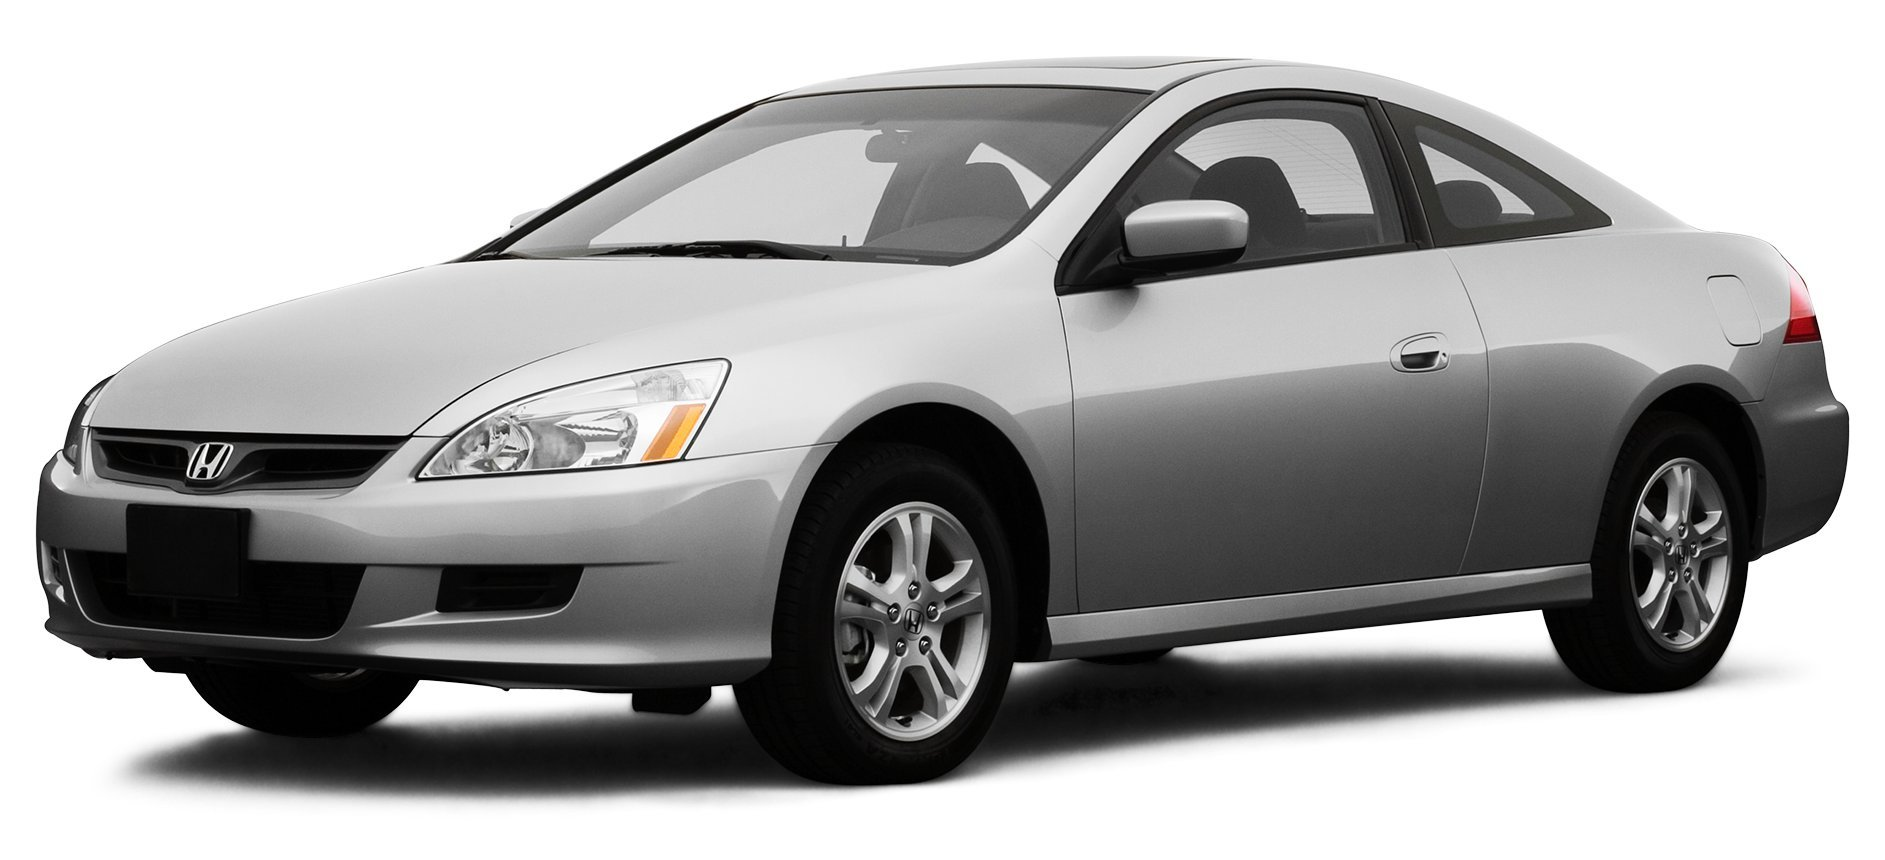 2007 Honda Accord EX, 2 Door 4 Cylinder Automatic Transmission ...